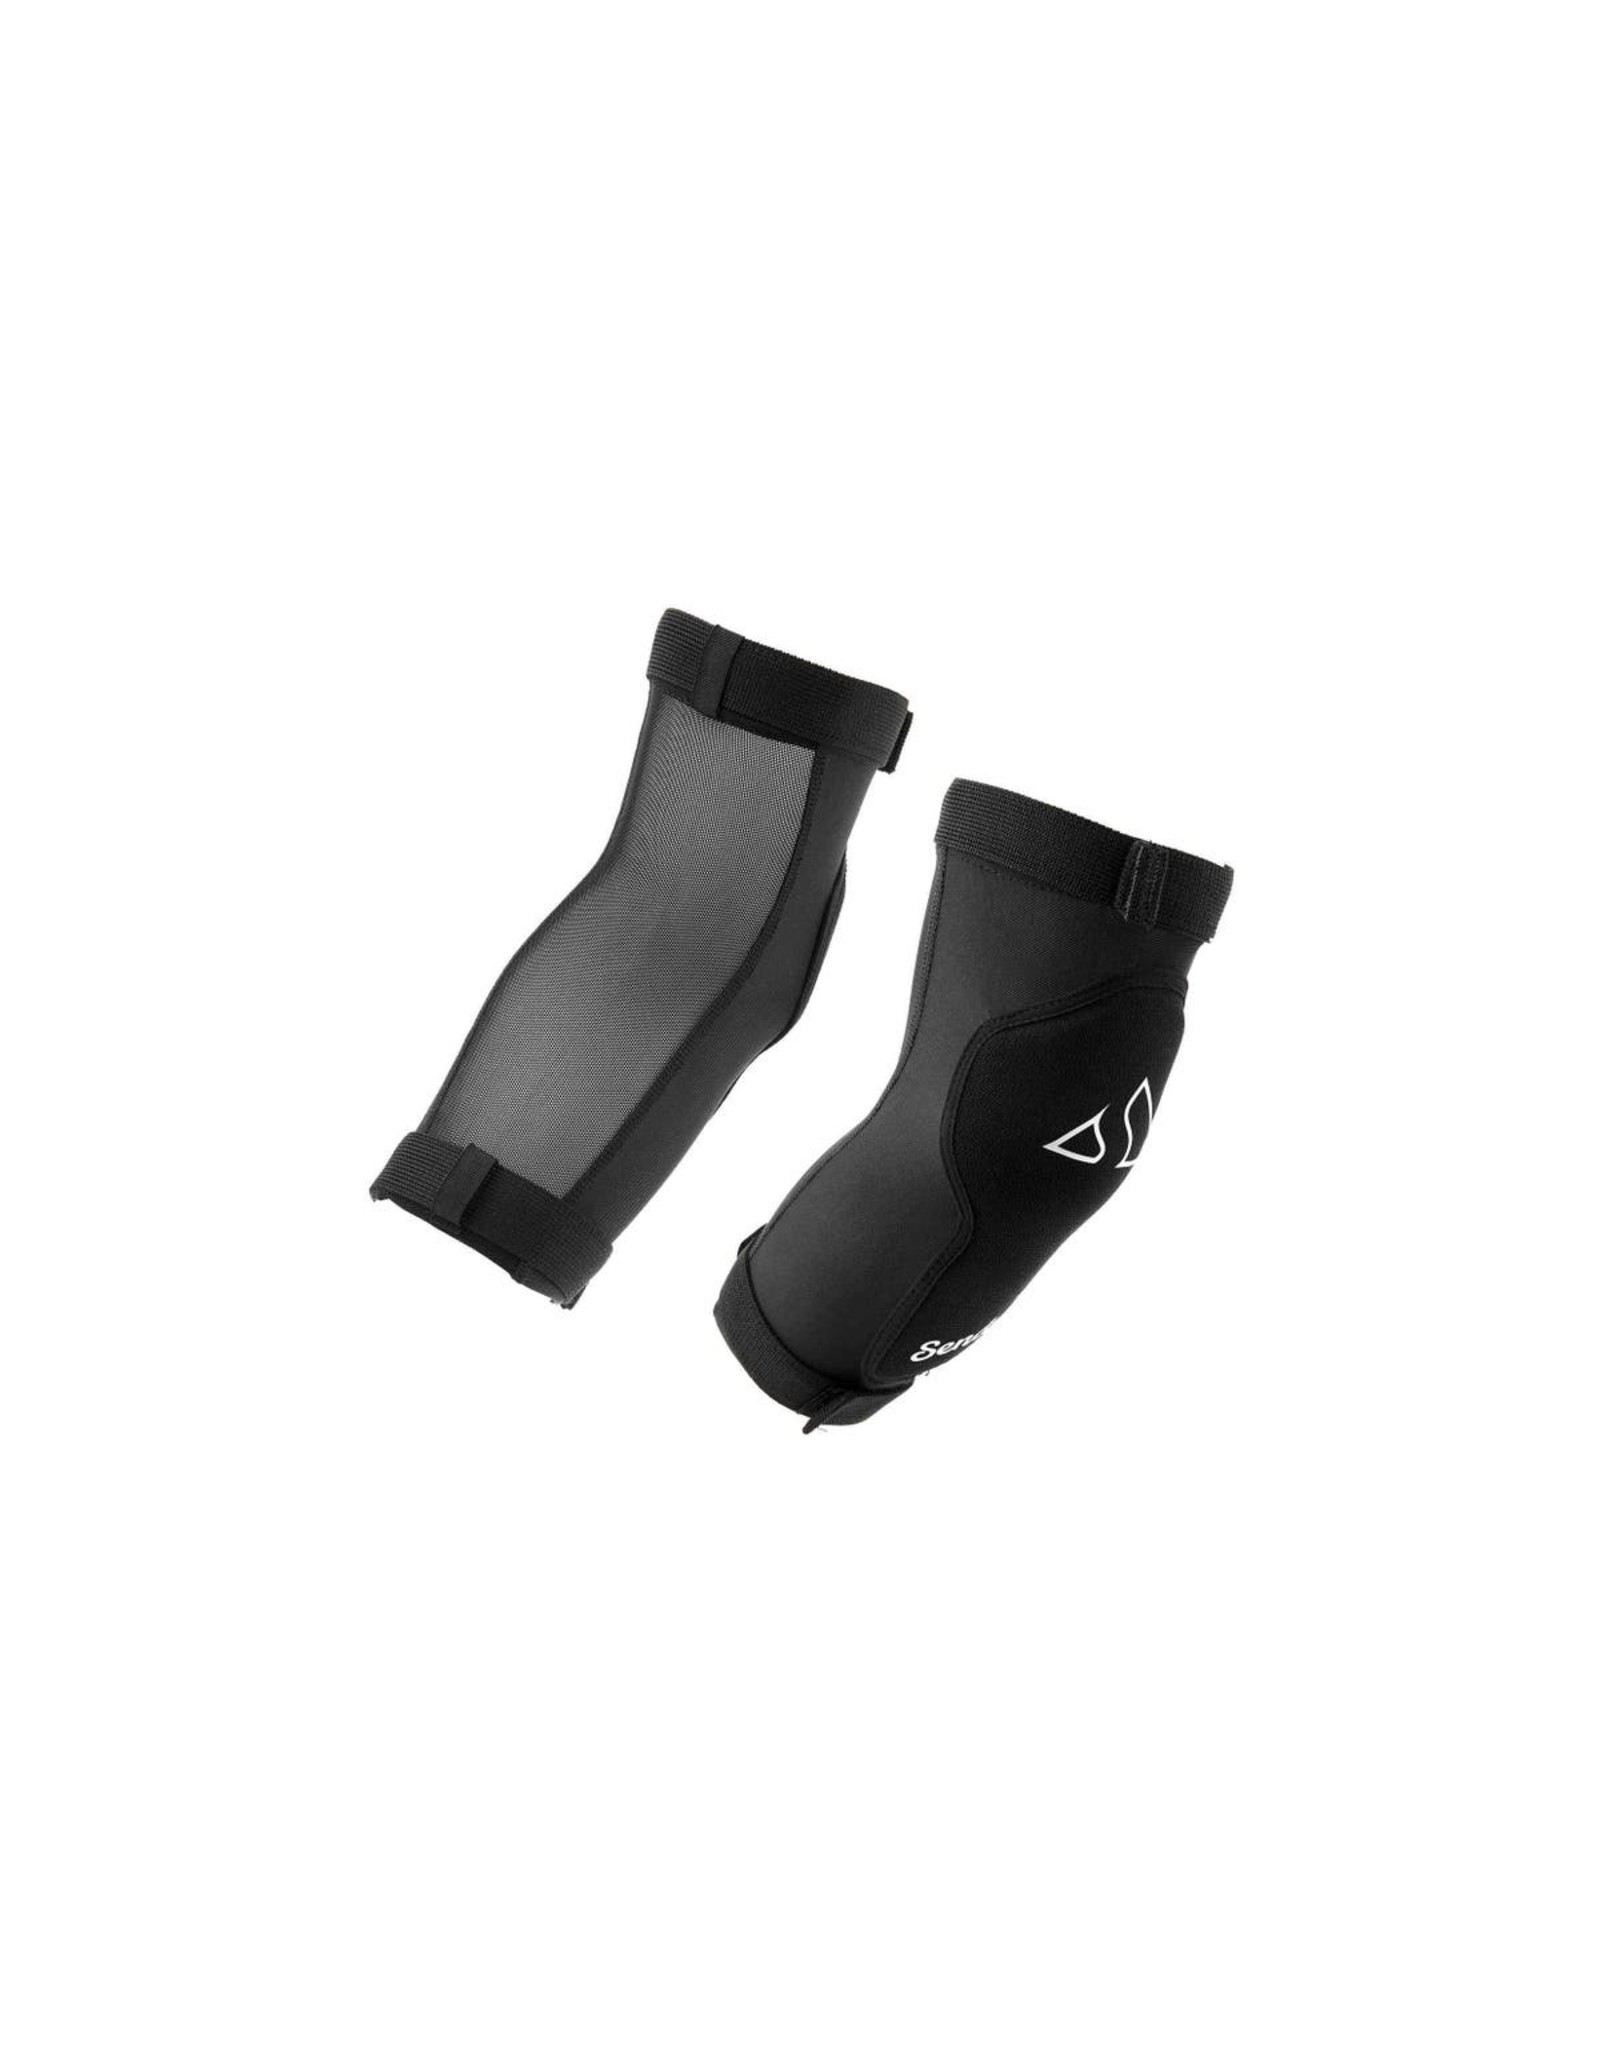 SENDY YOUTH ELBOW PAD